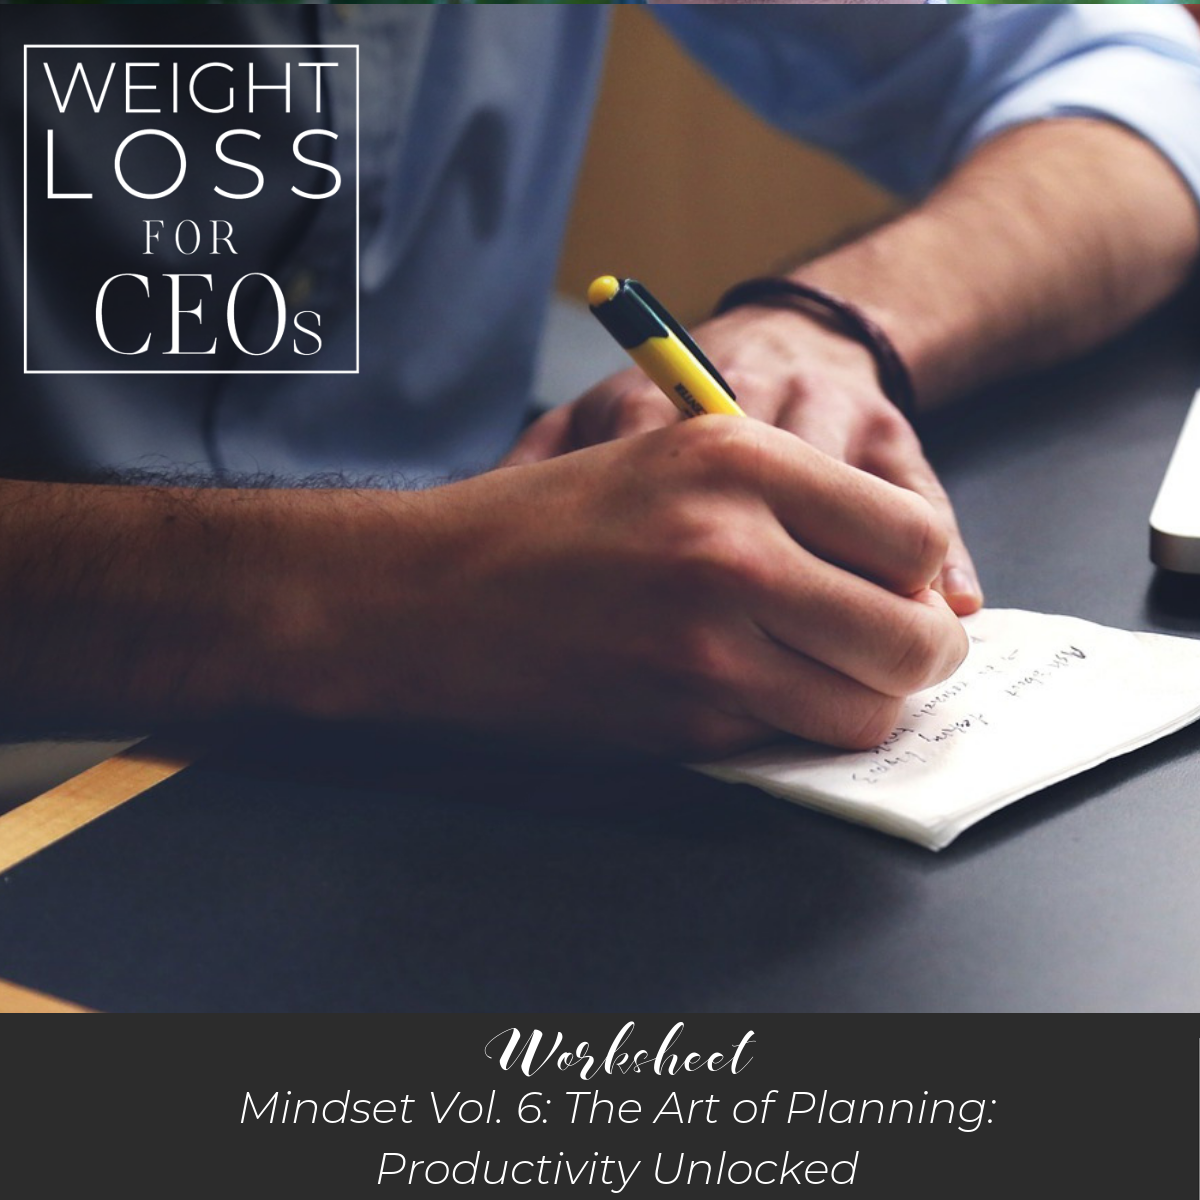 Ep #16: Mindset Vol. 6: The Art of Planning: Productivity Unlocked